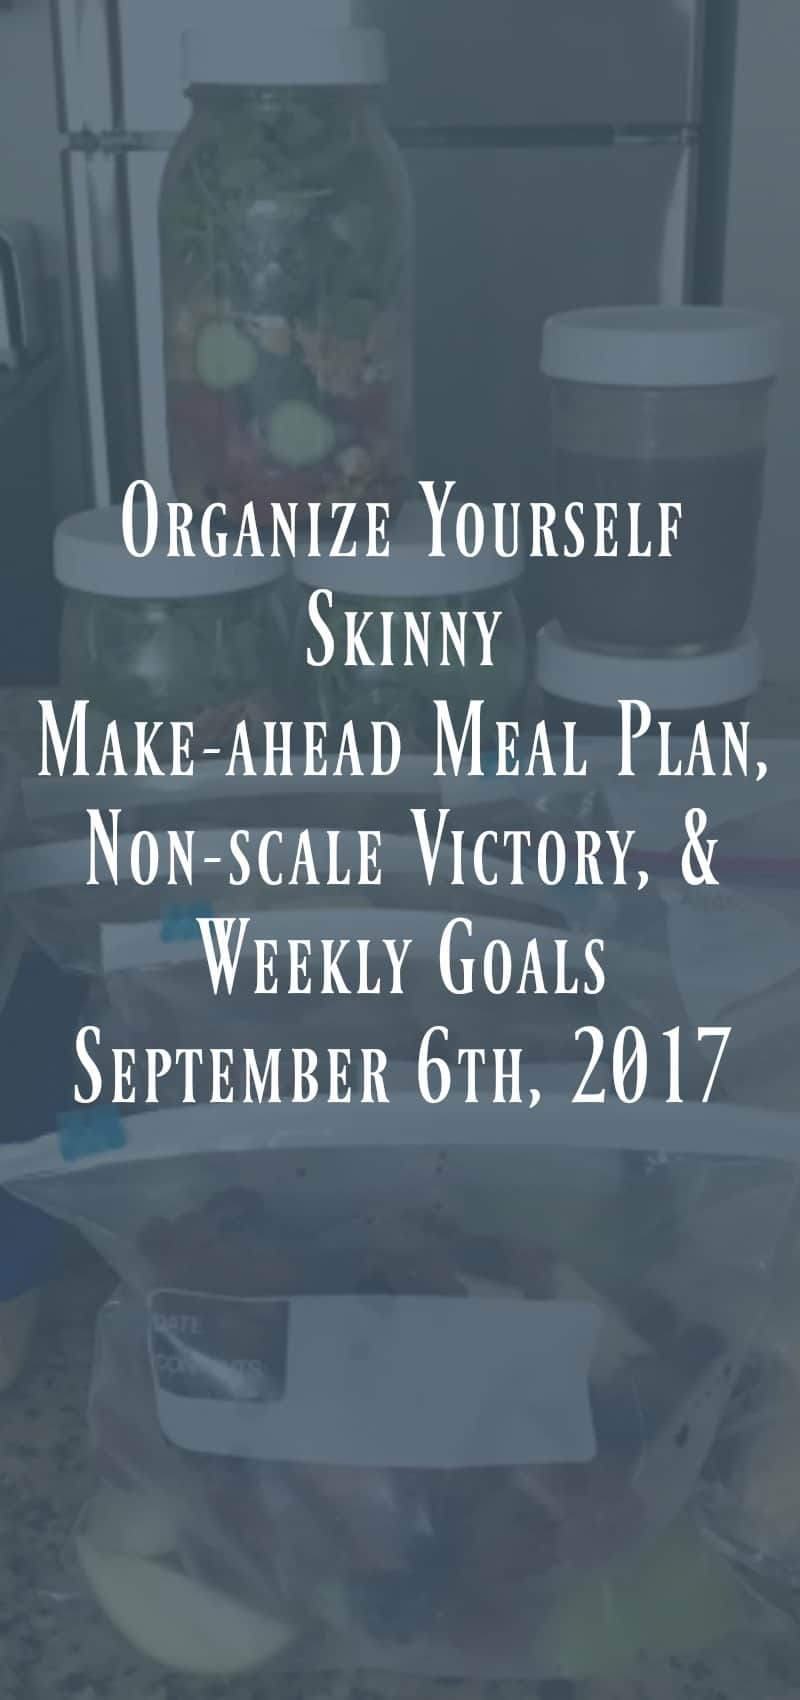 Make-ahead Meal Plan, Non-scale Victory, and Weekly goals